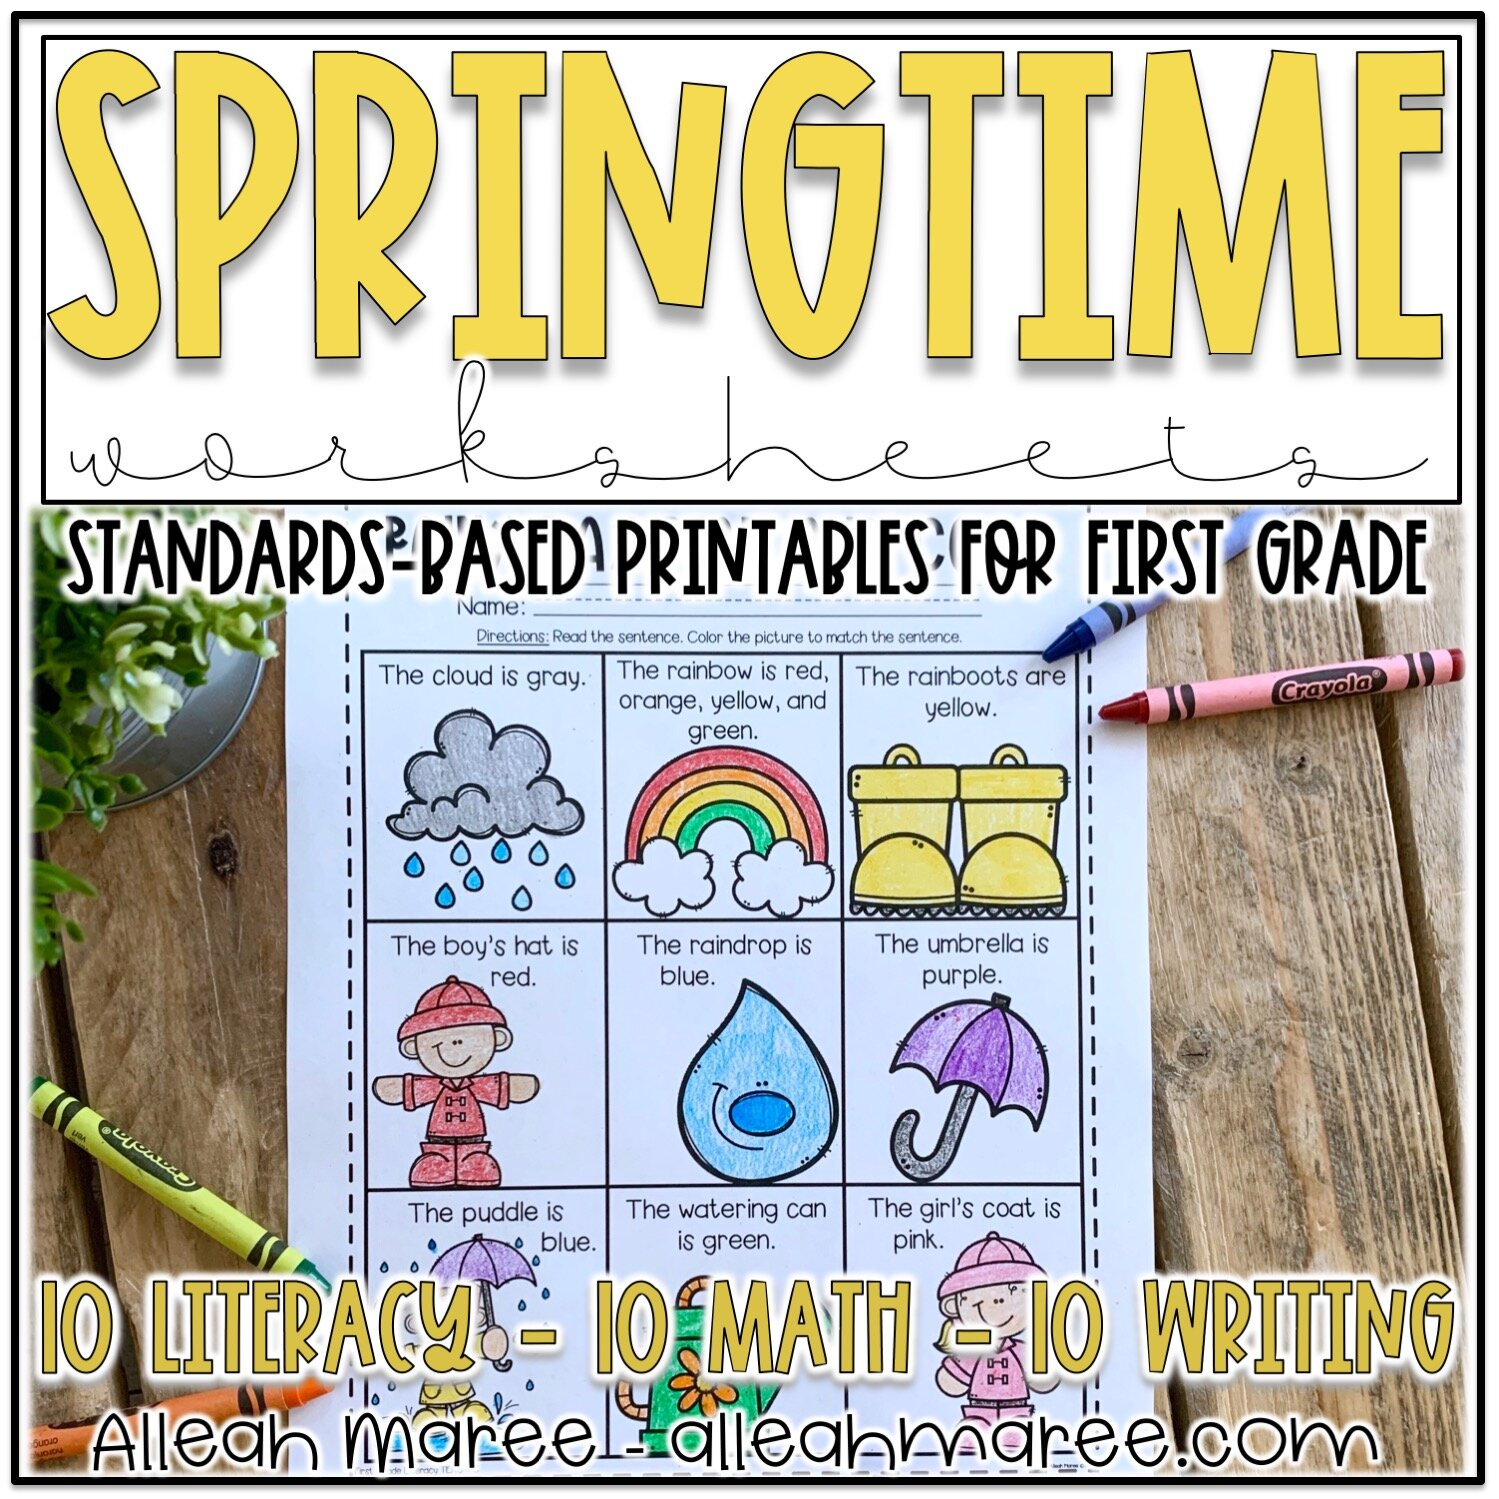 hight resolution of Springtime Worksheets for First Grade: Spring Literacy and Math Printables  — Alleah Maree